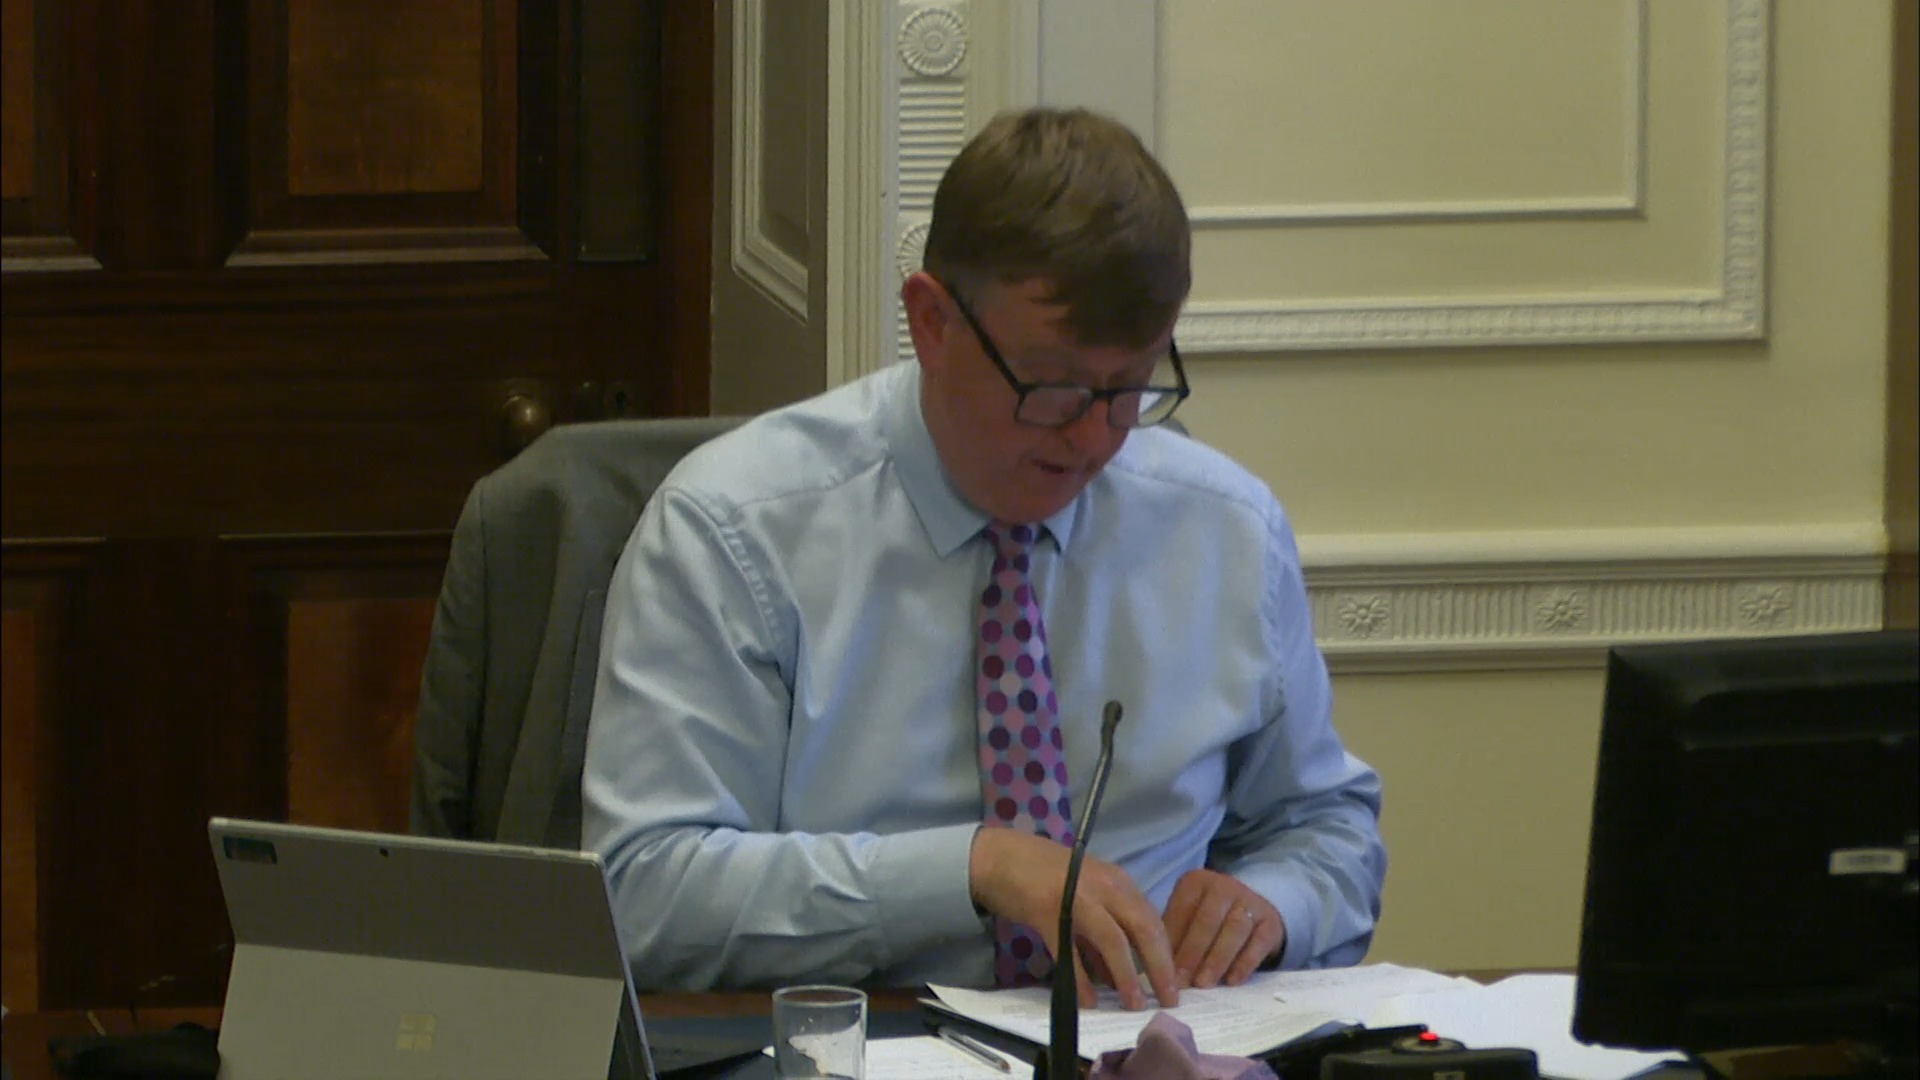 Justice Committee Meeting - Thursday 8th July 2021